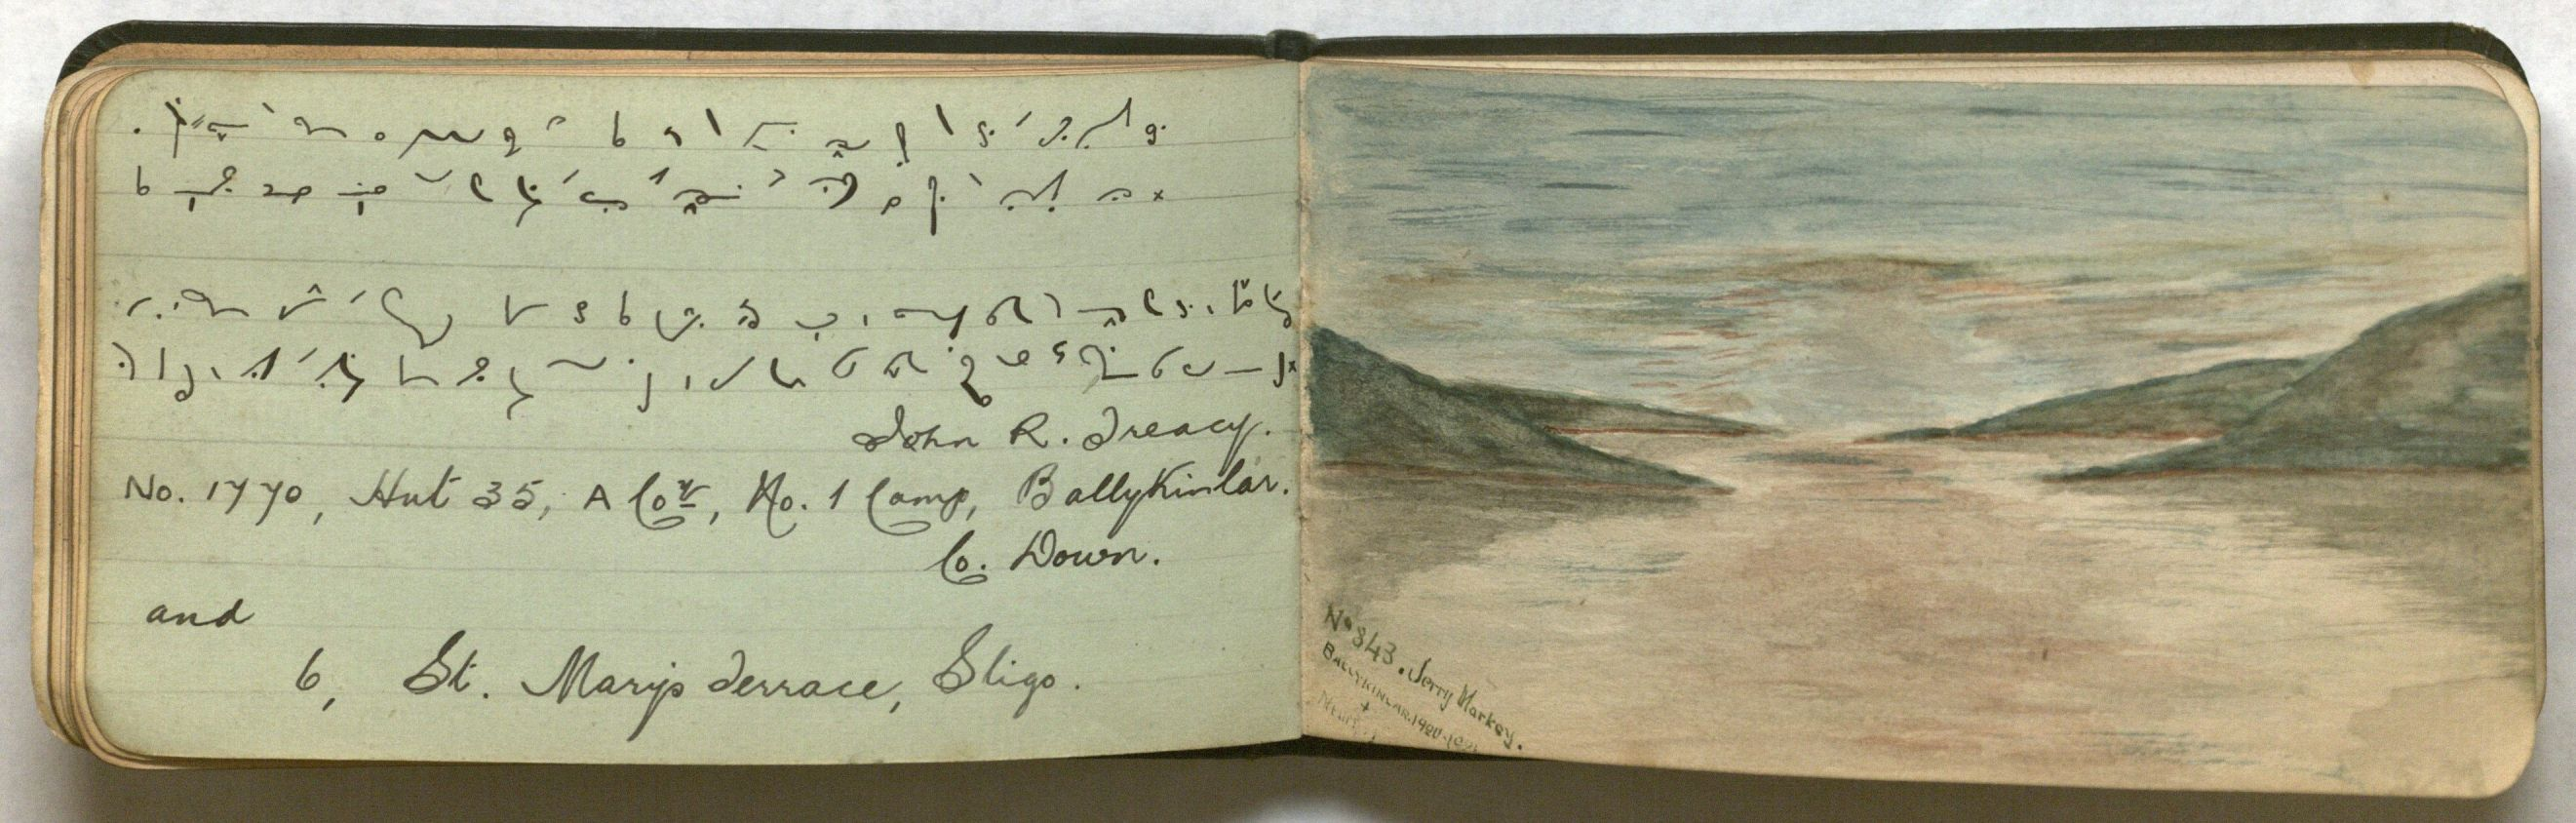 Photograph of an opening featuring an inscription in shorthand and a sketch.